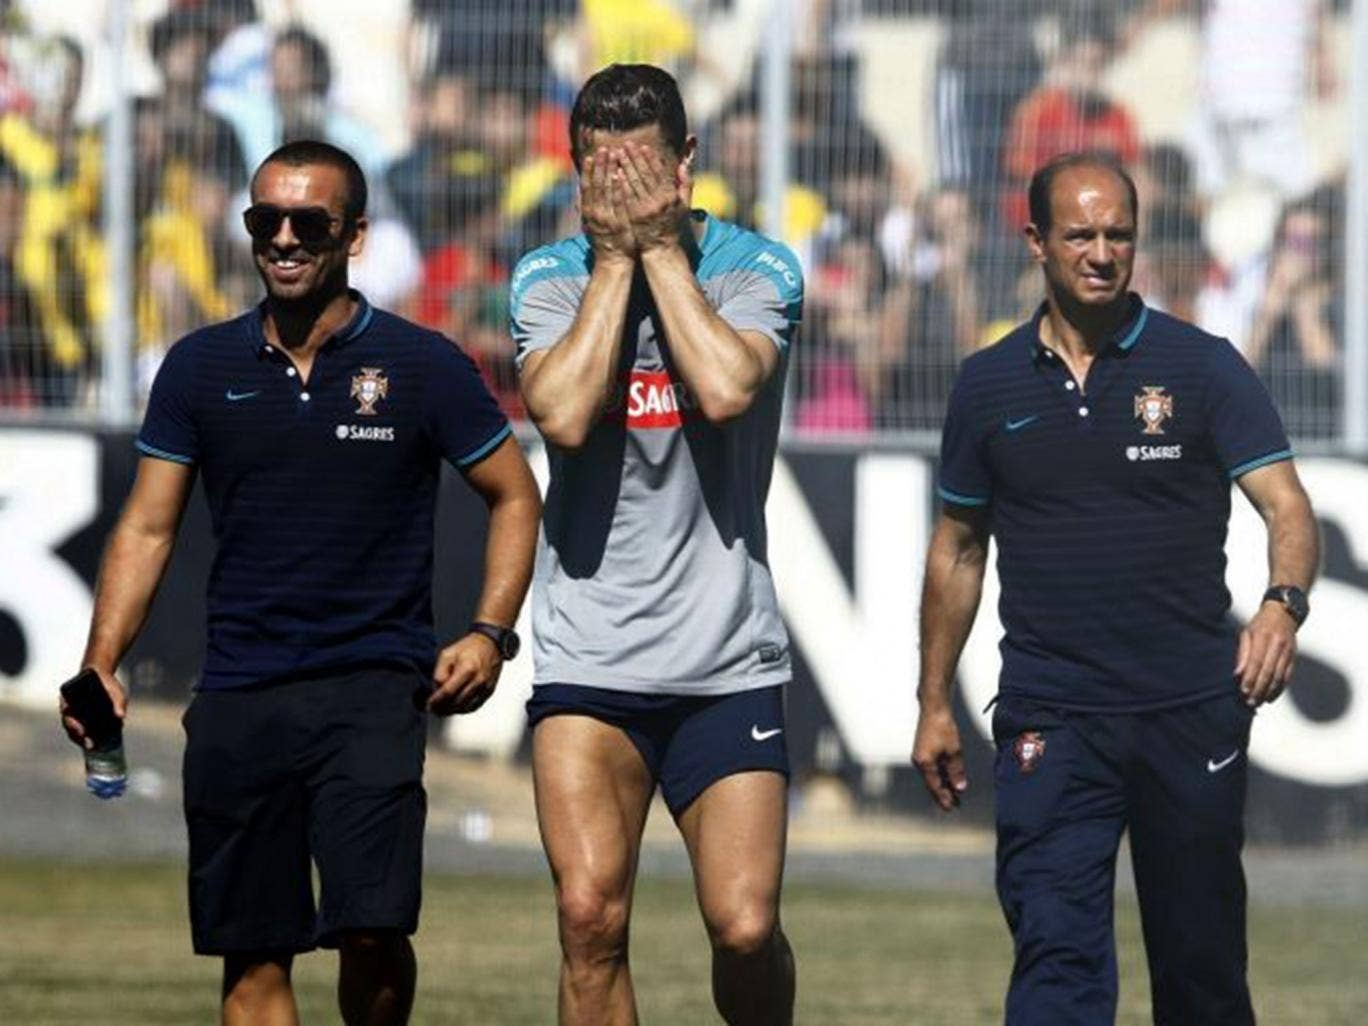 Cristiano Ronaldo covers his face as he limps out of a Portugal training session